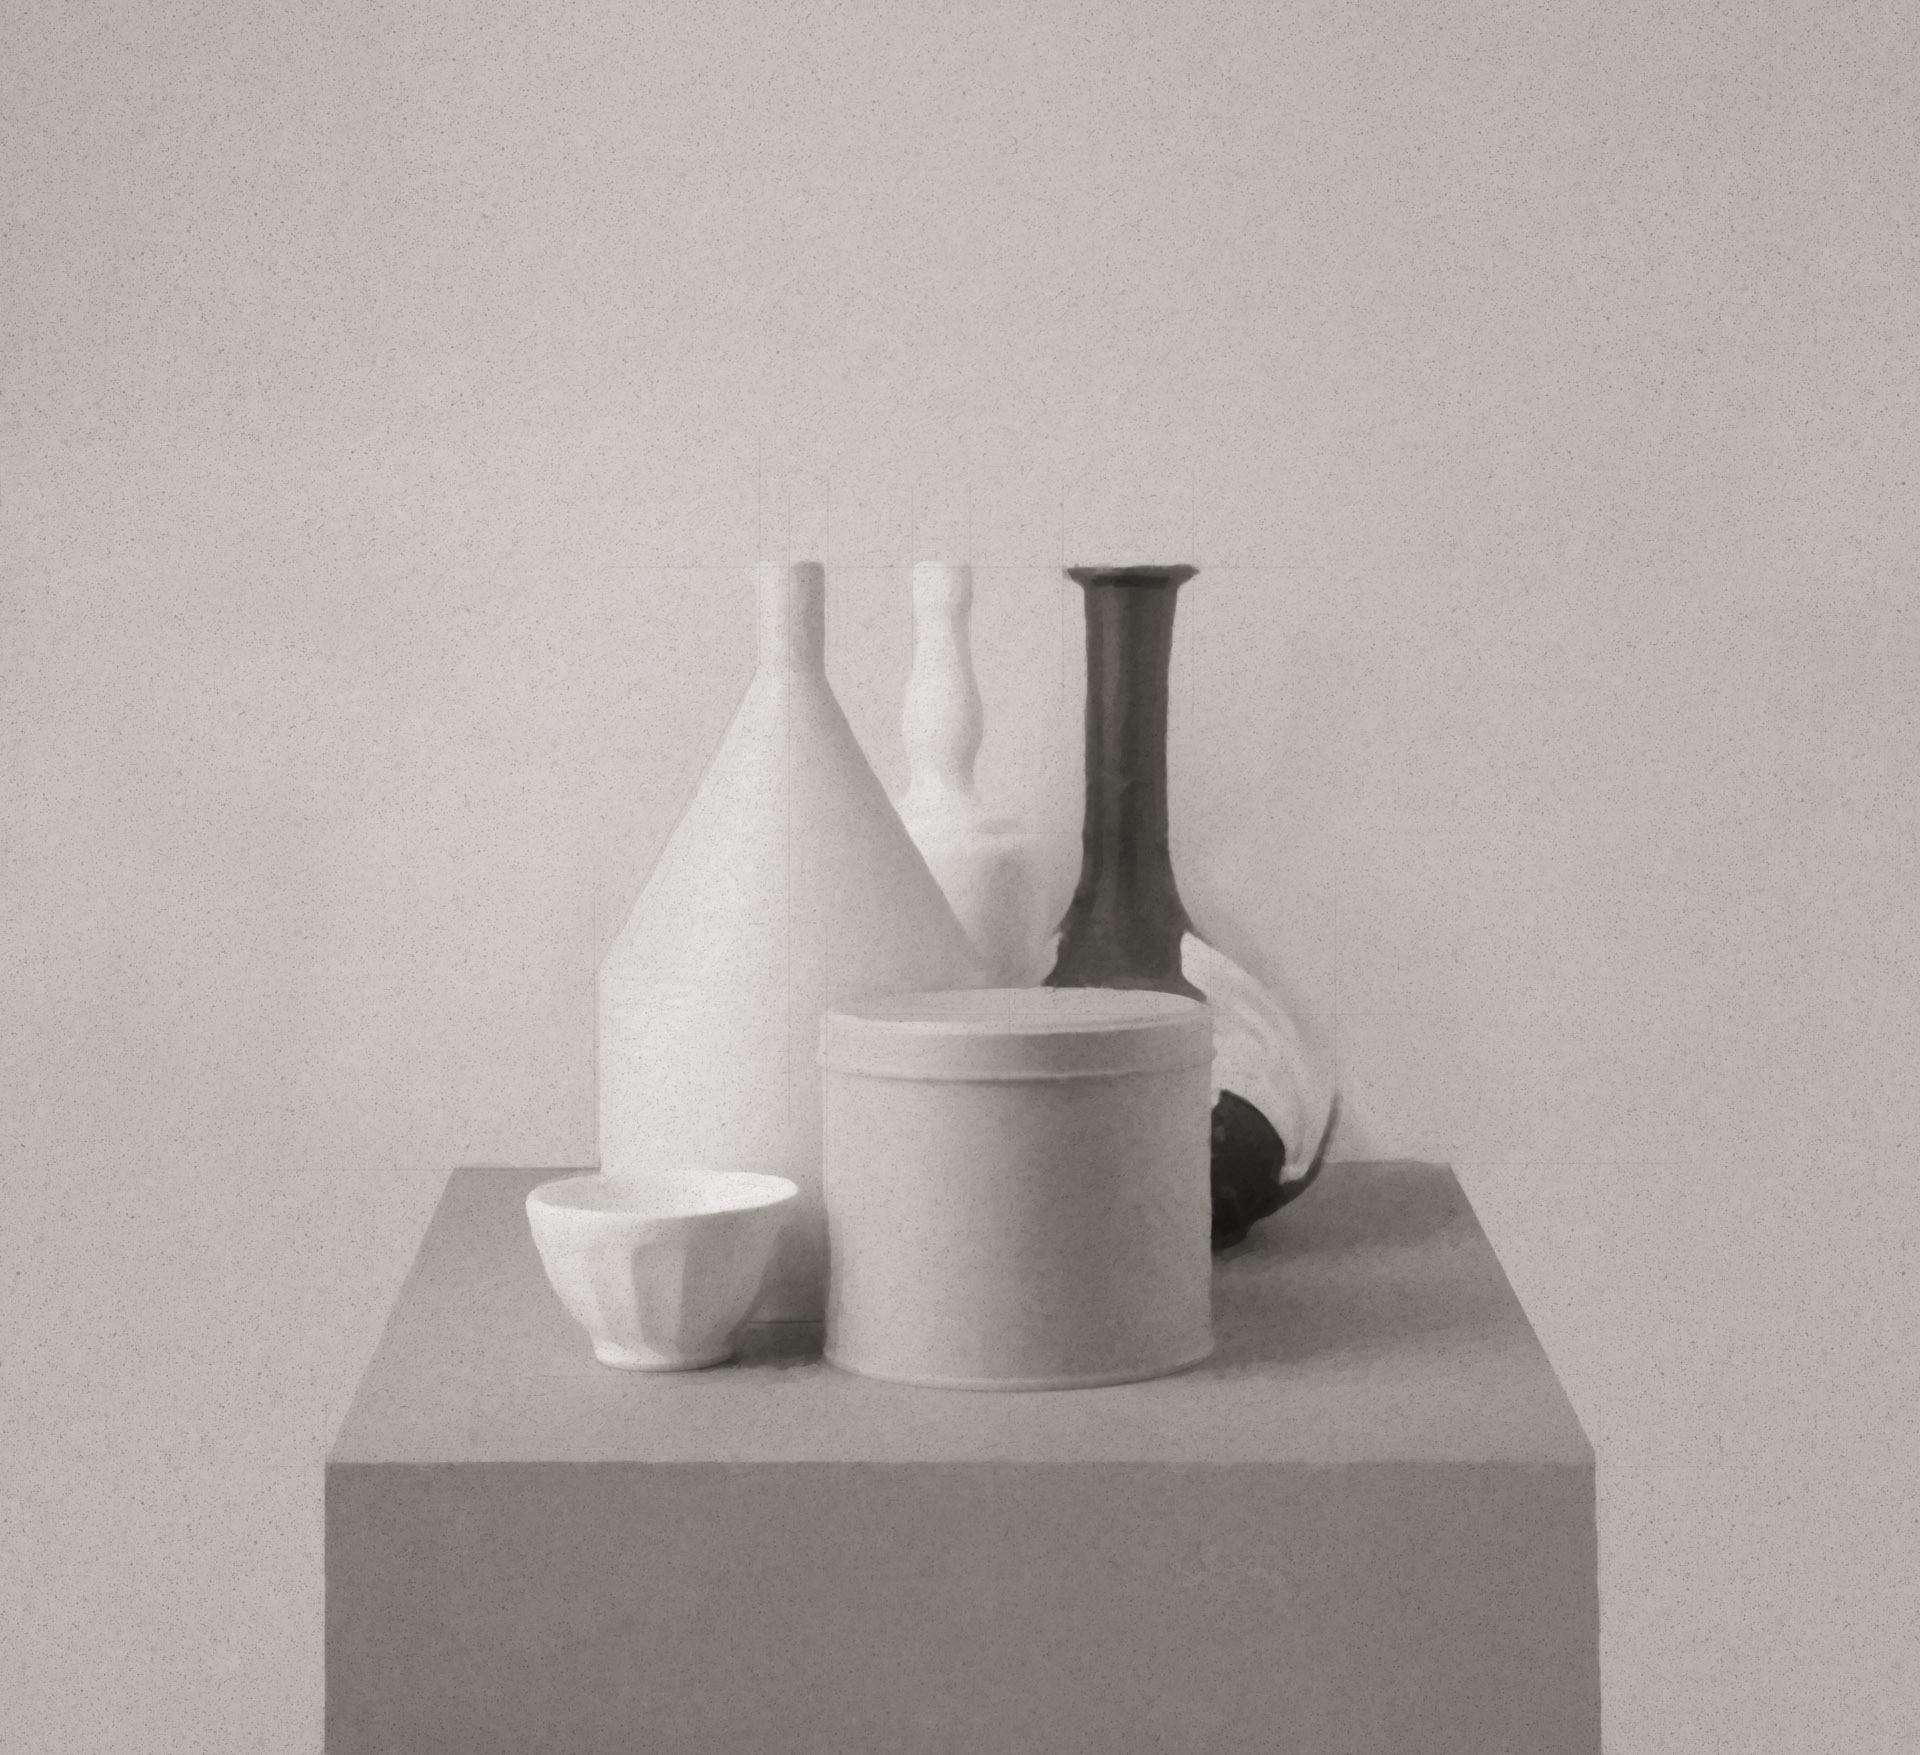 Morandi on a Pedestal 189